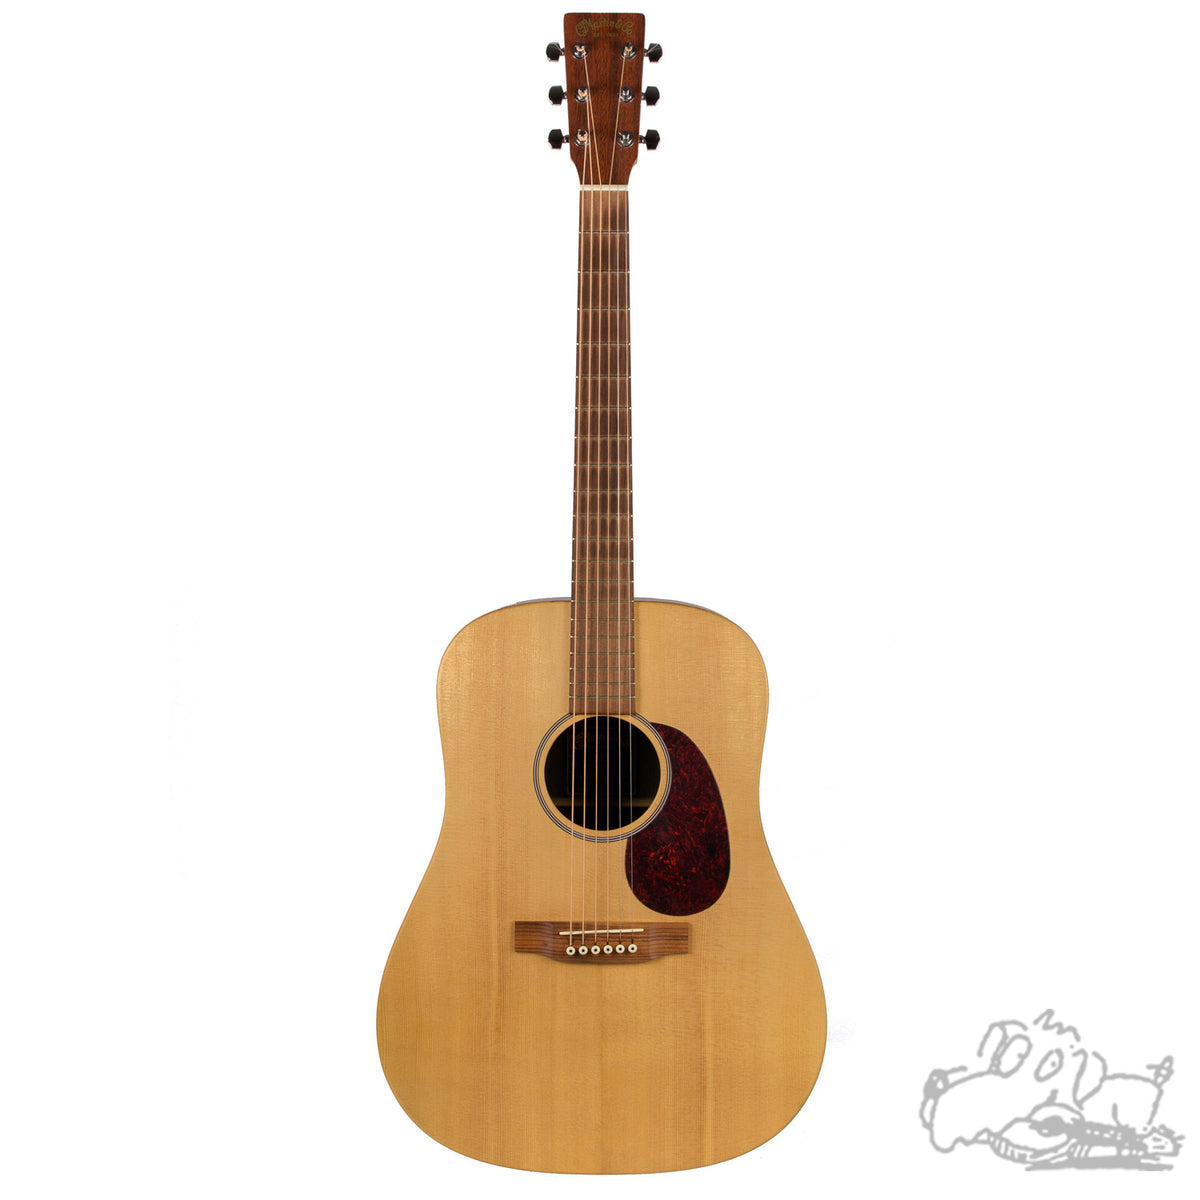 Previously Owned 2006 Martin DX-1